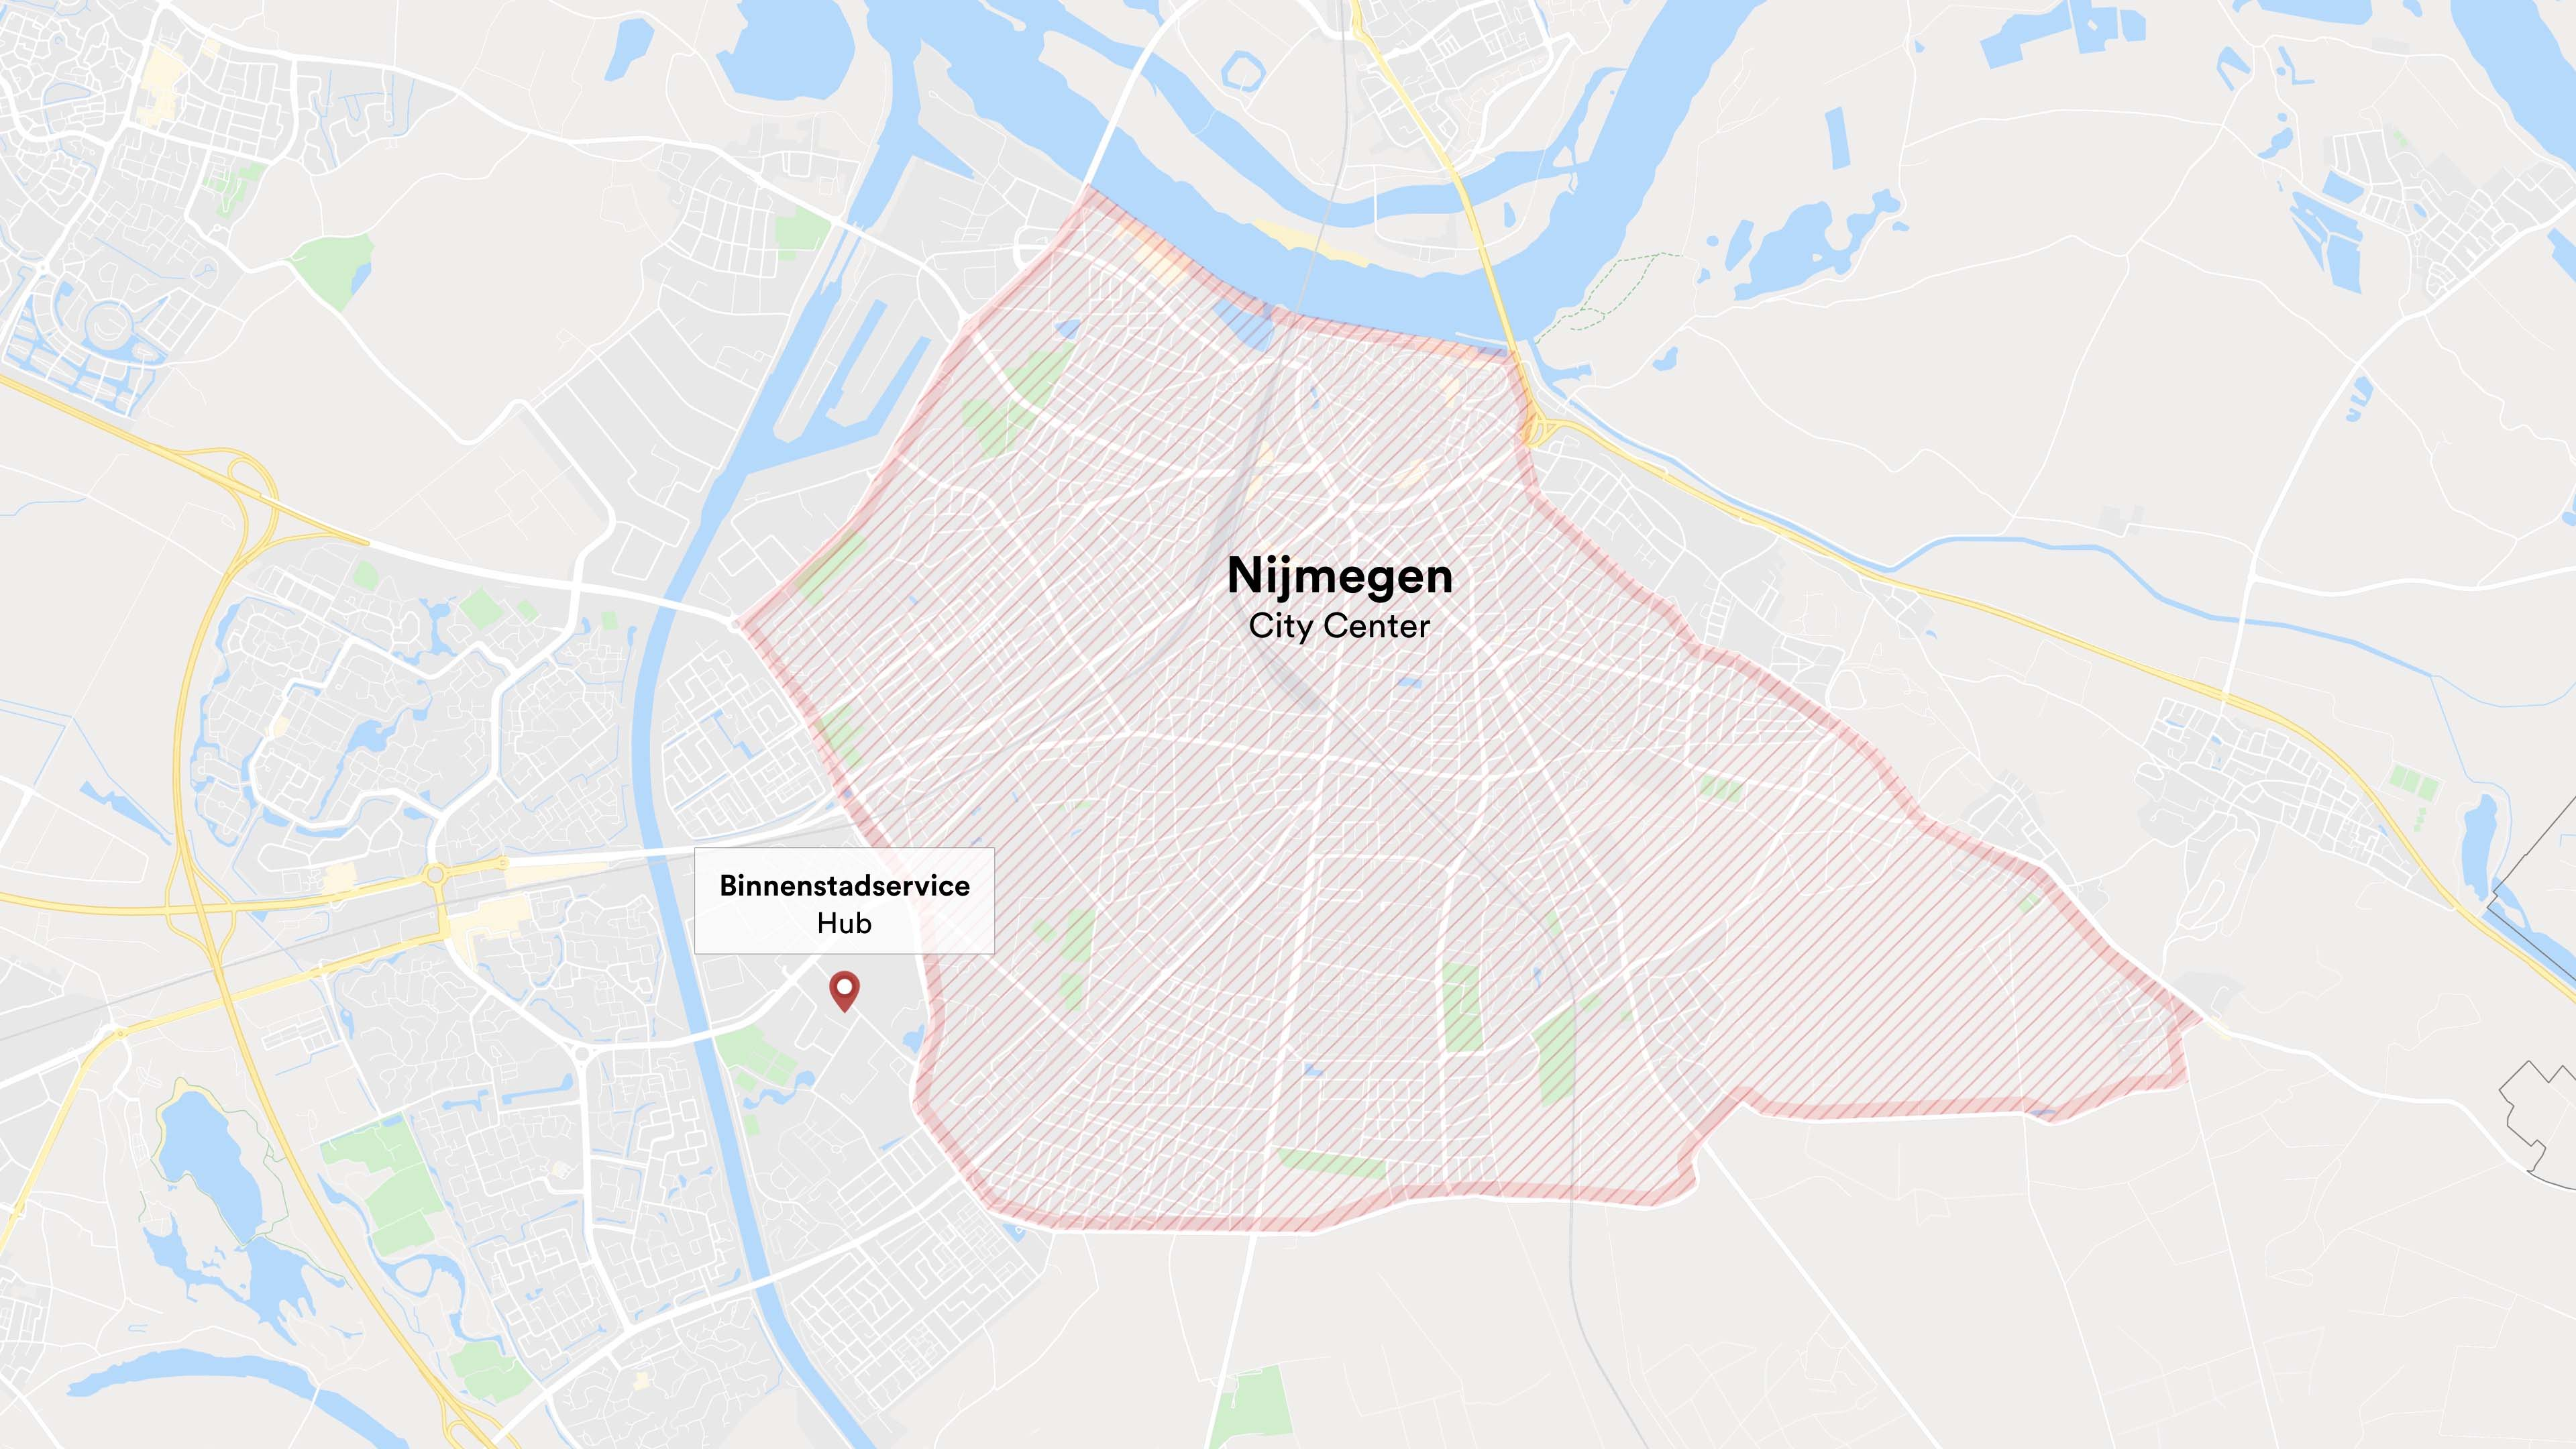 A map showing the Binnenstadservice delivery hub at the perimeter of the Nijmegen city center.